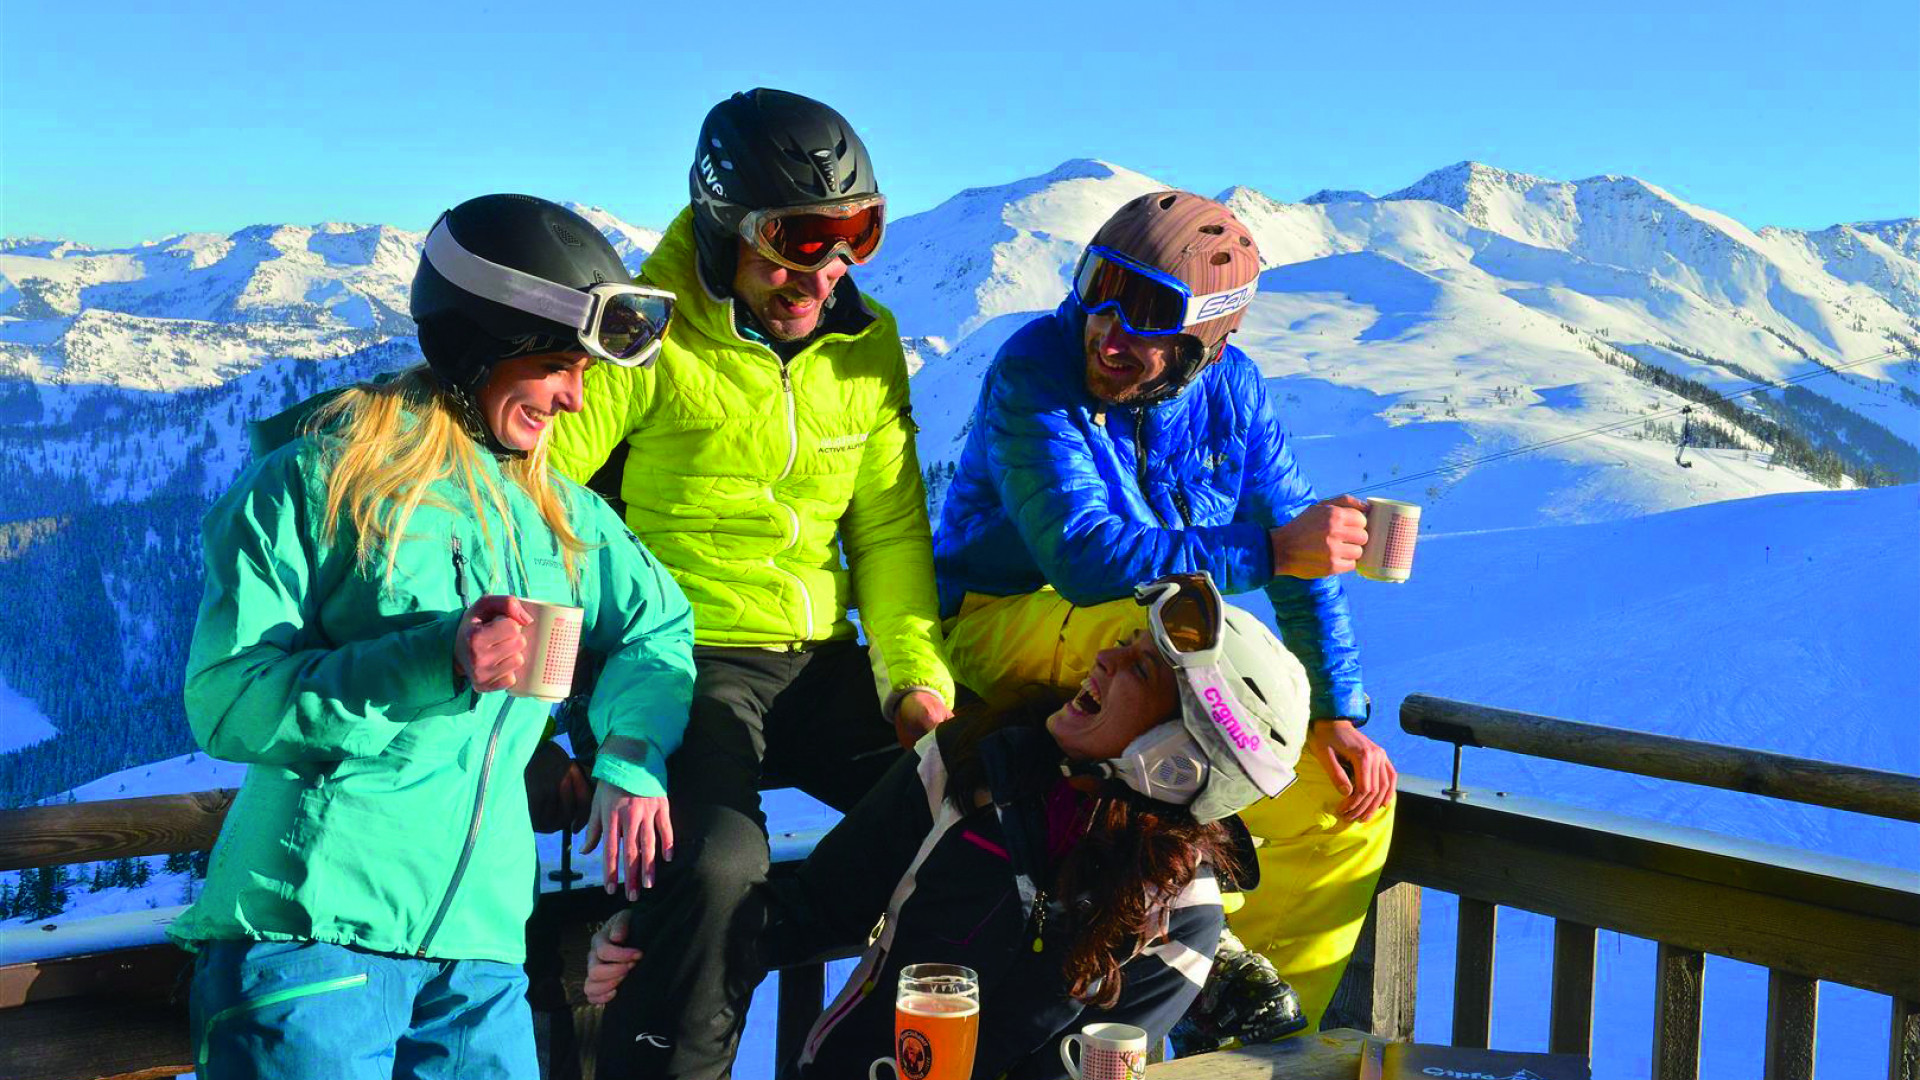 People enjoying an alpine bar in Austria